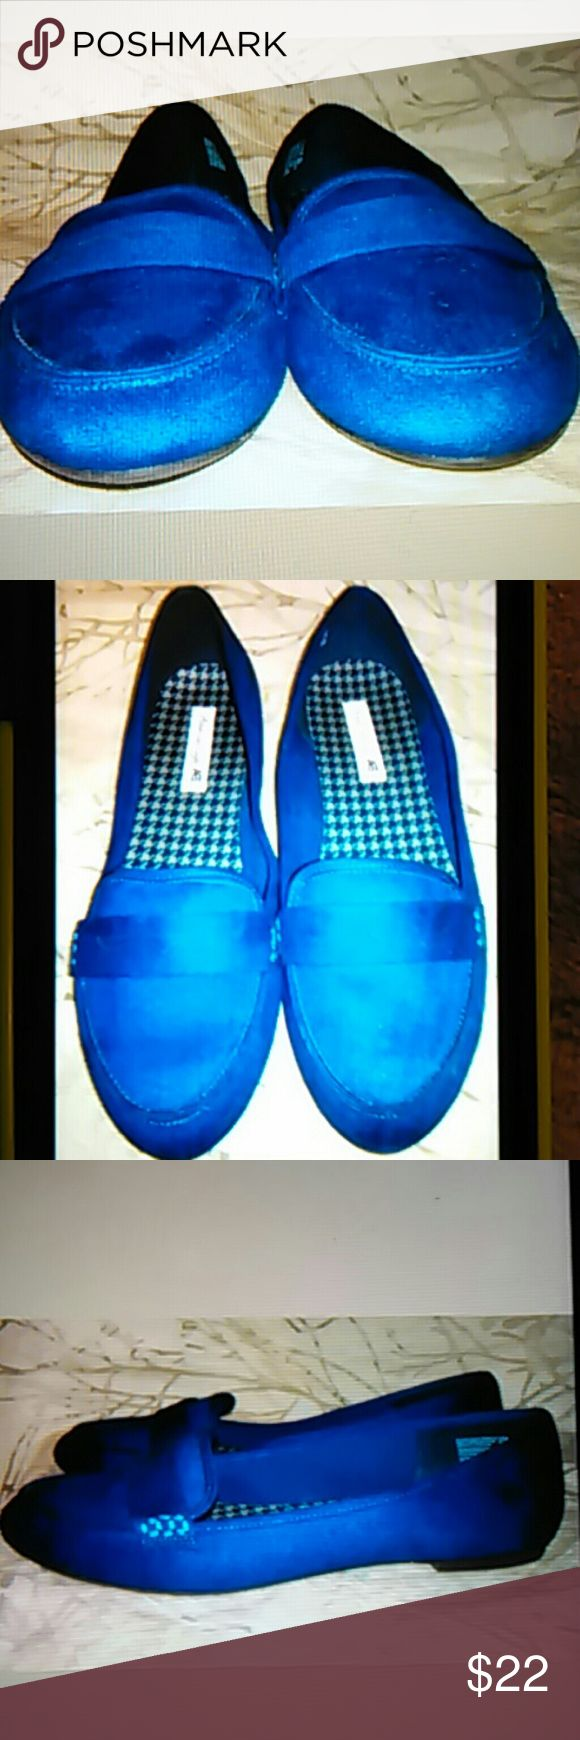 AMERICAN EAGLE BLUE LOAFERS SIZE 11 M These shoes are in EXCELLENT condition. Please view ALL photos. Thanks ! #170 AMERICAN EAGLE Shoes Flats & Loafers